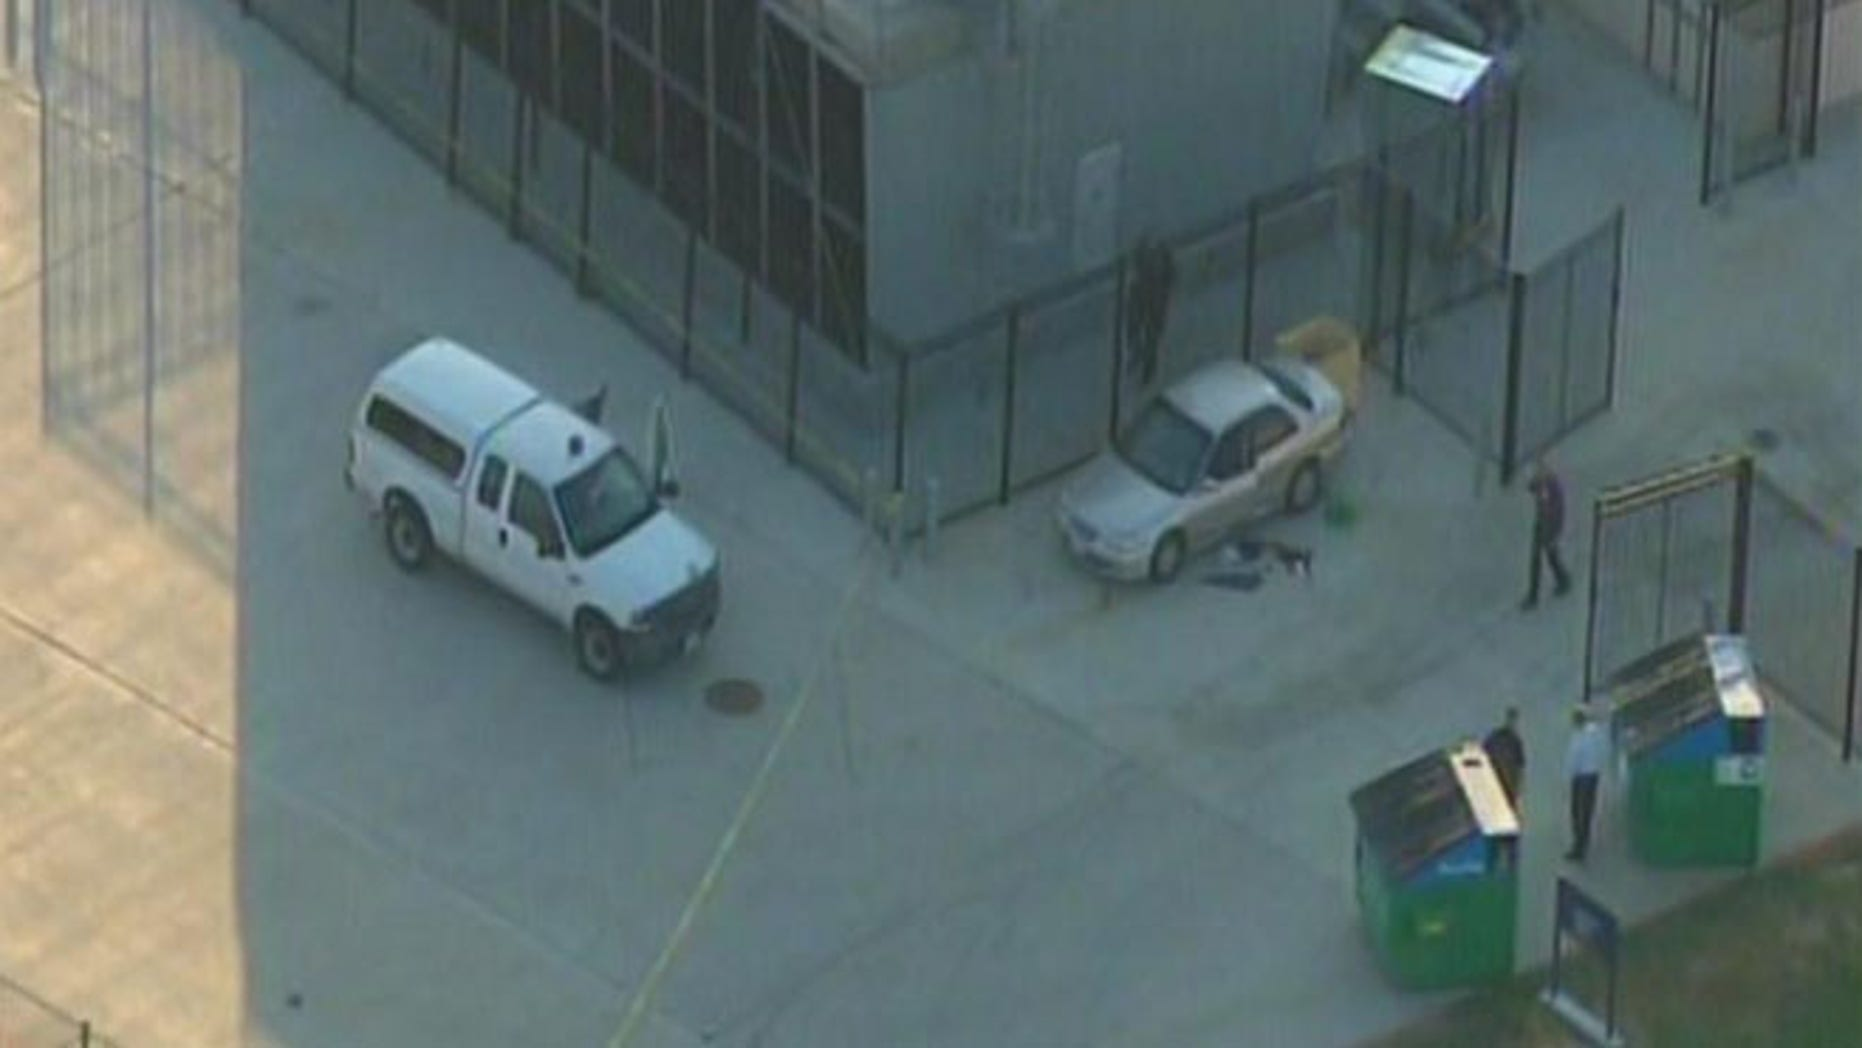 Witnesses have told FOX 26 two school coaches discovered the woman bleeding and  attempted CPR until paramedics arrived.